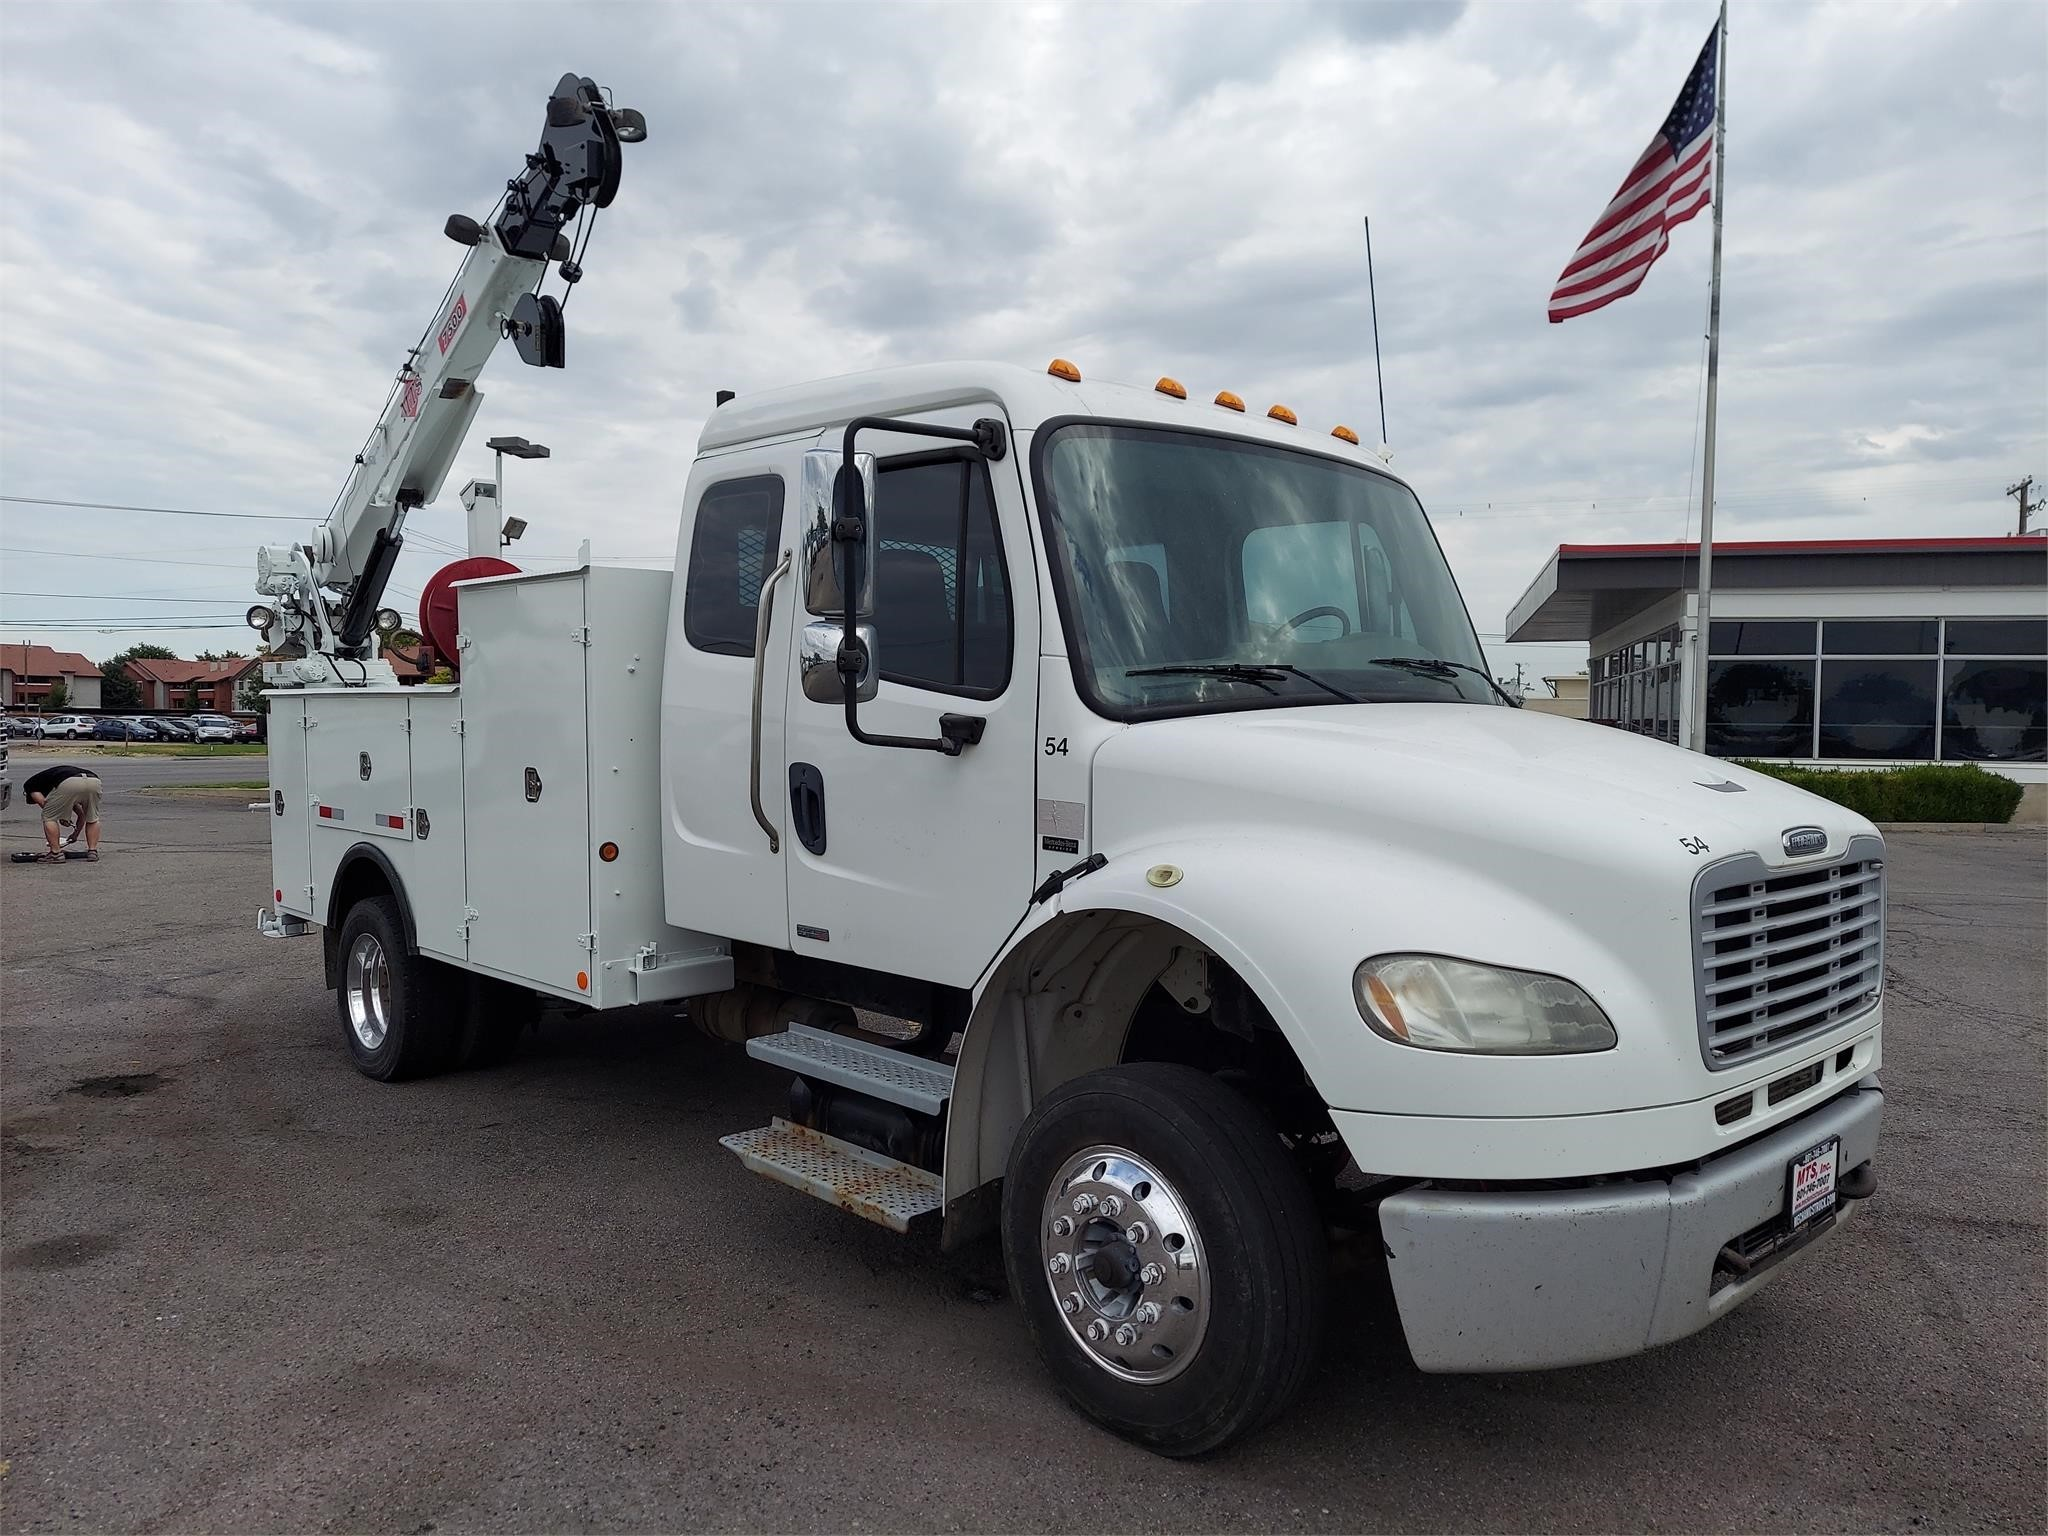 Used, 2008, FREIGHTLINER, BUSINESS CLASS M2 106, Utility Truck - Service Truck